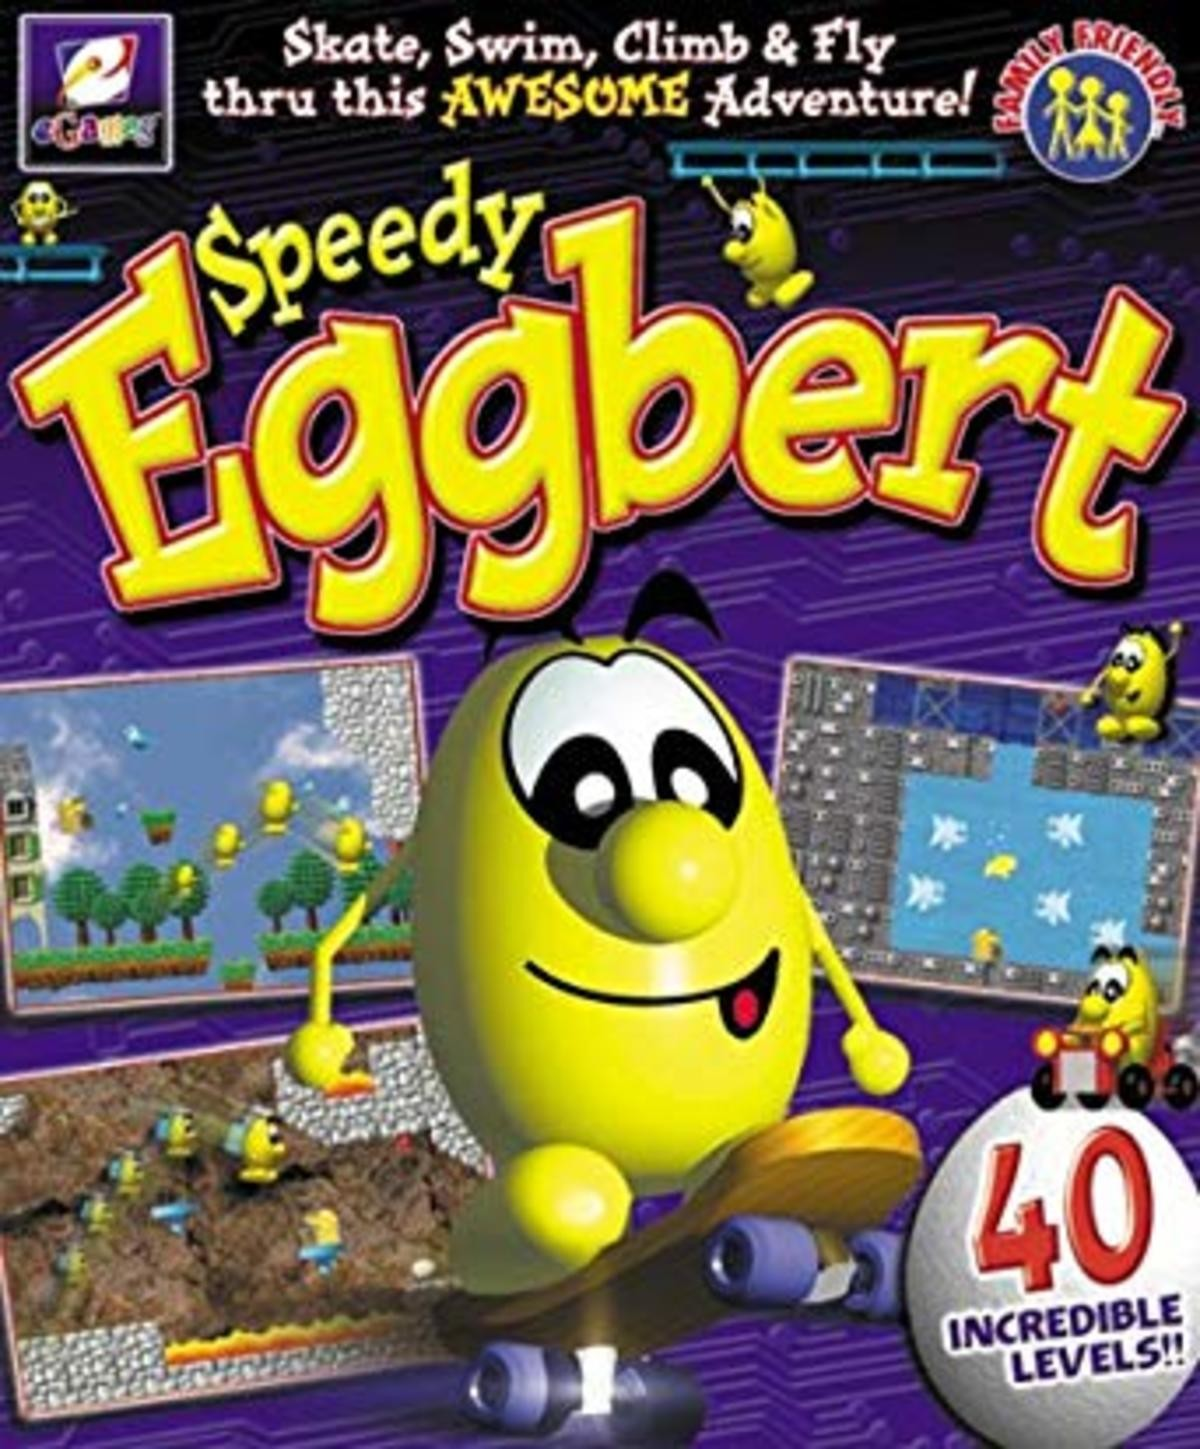 hoc hard Bat. .. Speedy Eggbert was great. I remember playing these in elementary school. Was the OG Mario maker with its level creator.